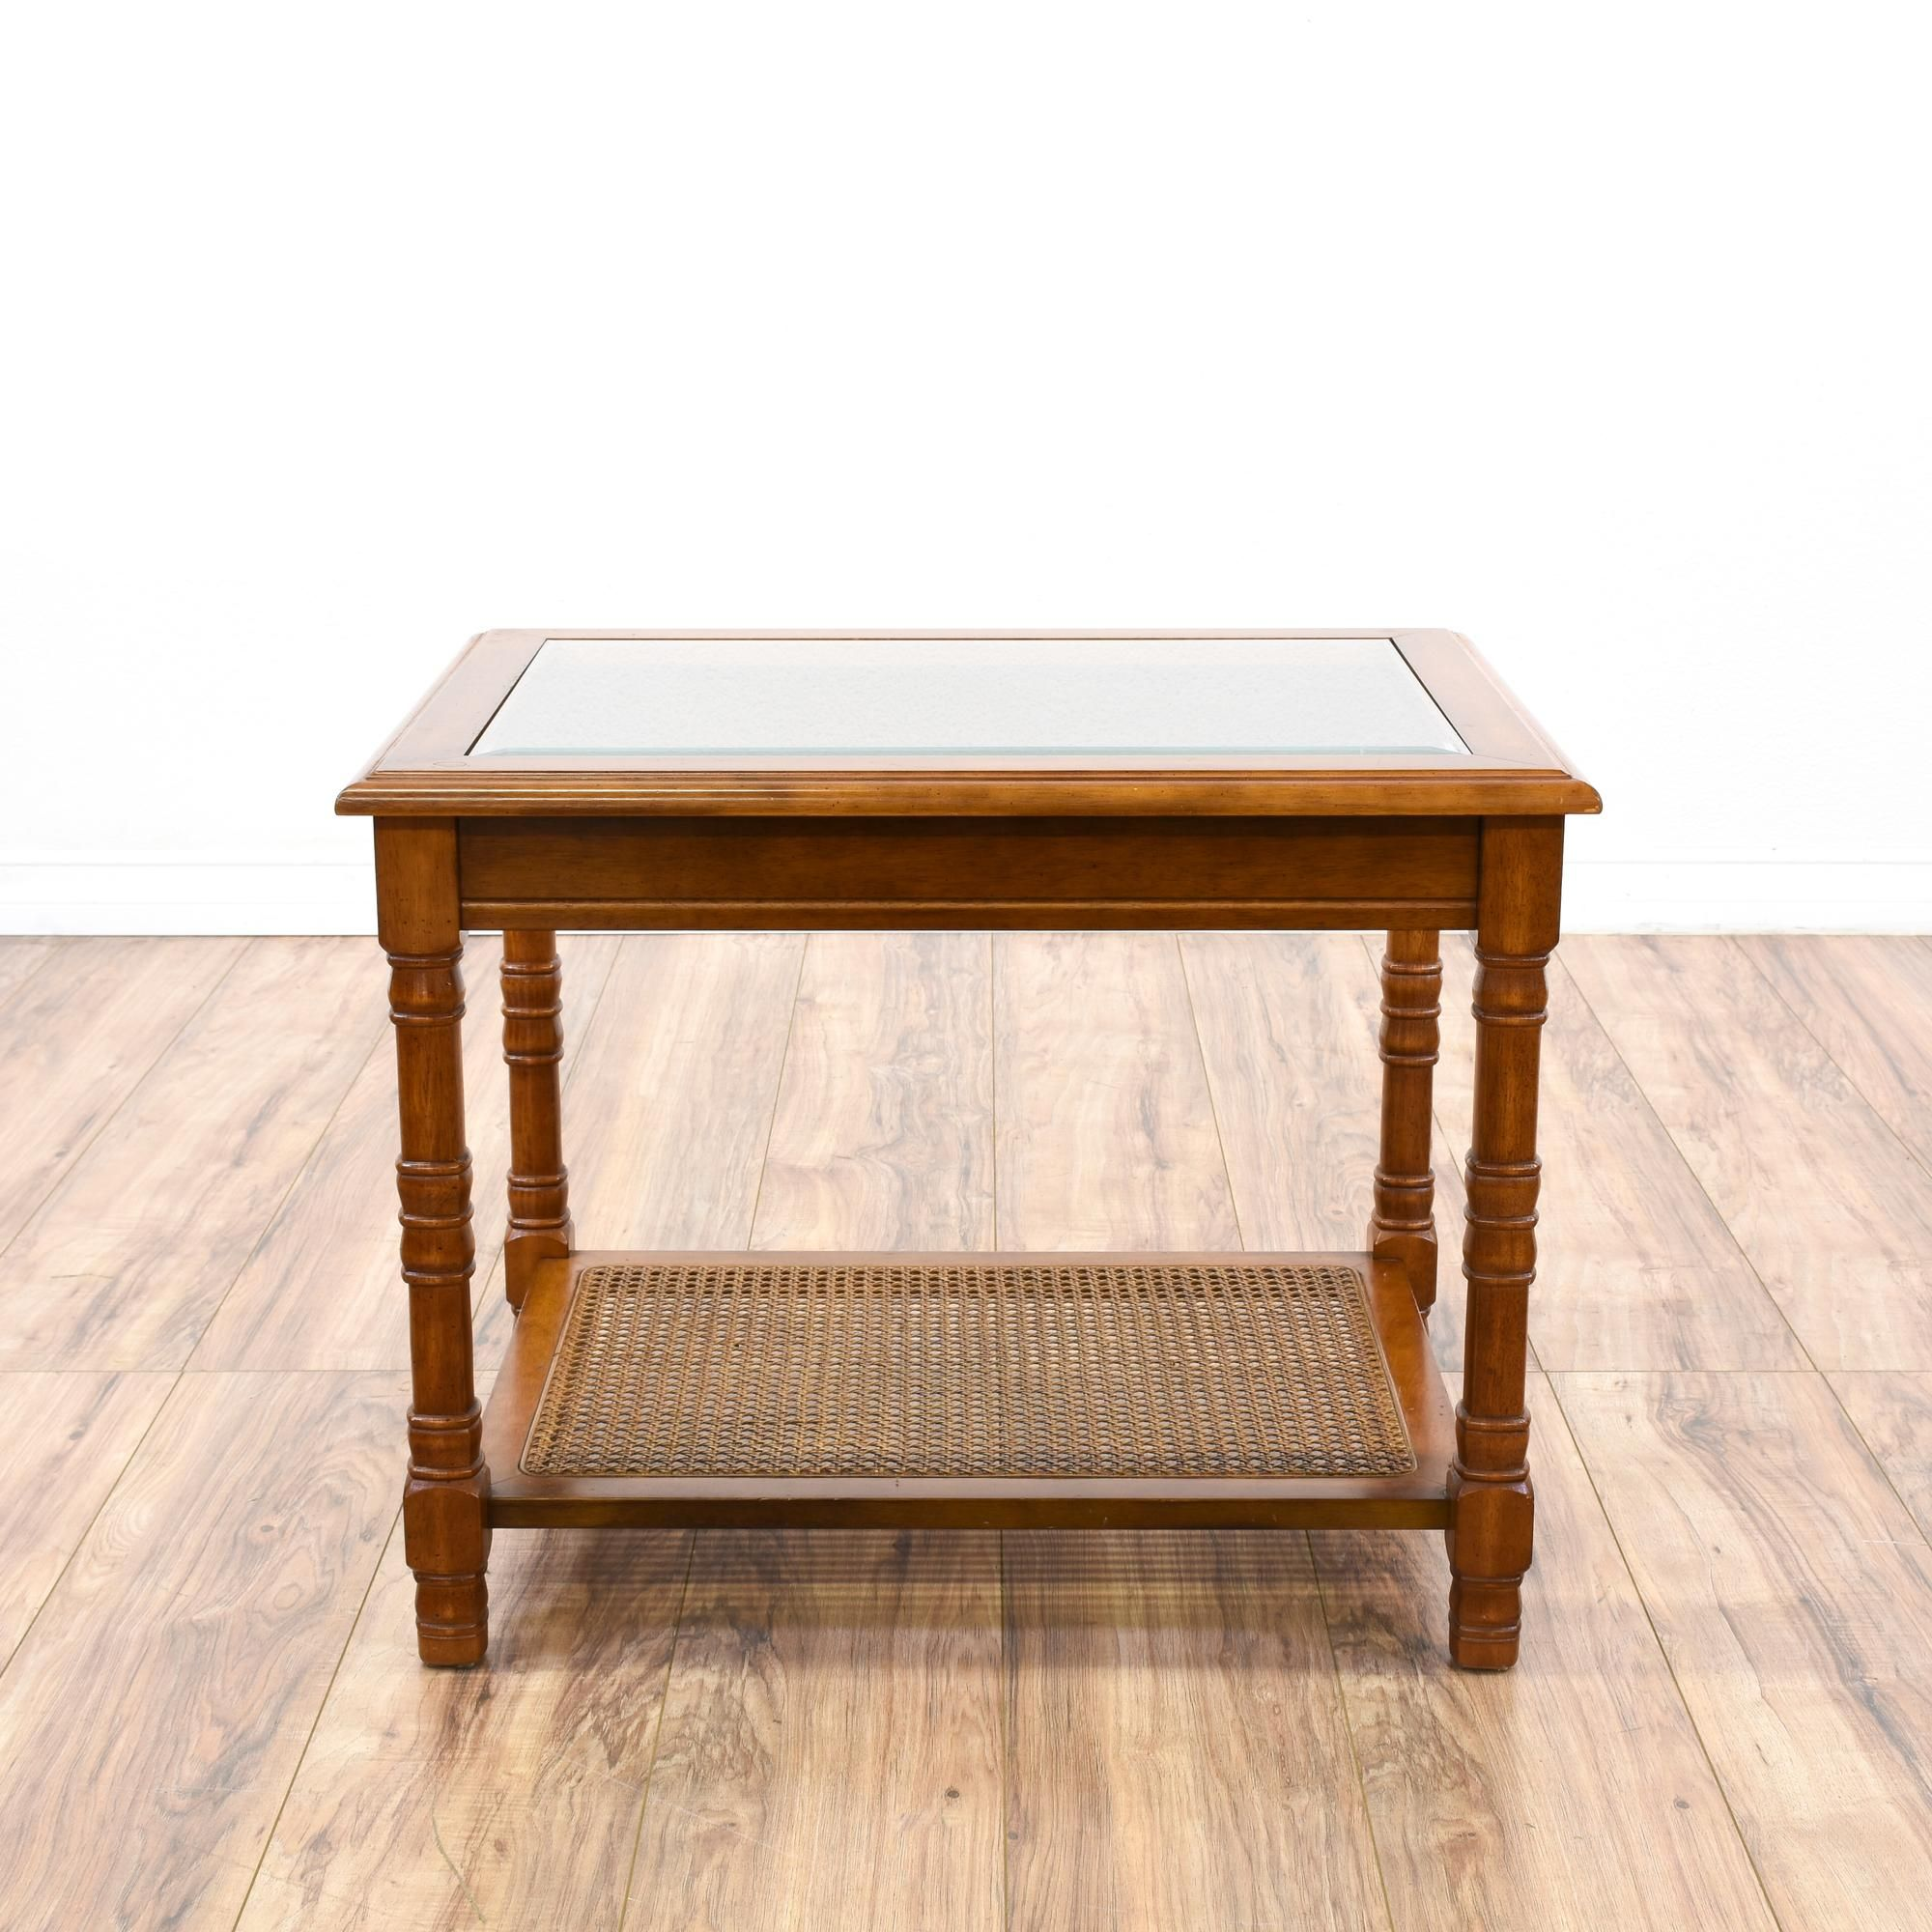 Round Rattan Coffee Table With Glass Top Answerplane Com Rattan Coffee Table Wicker Coffee Table Bamboo Coffee Table [ 1854 x 2941 Pixel ]